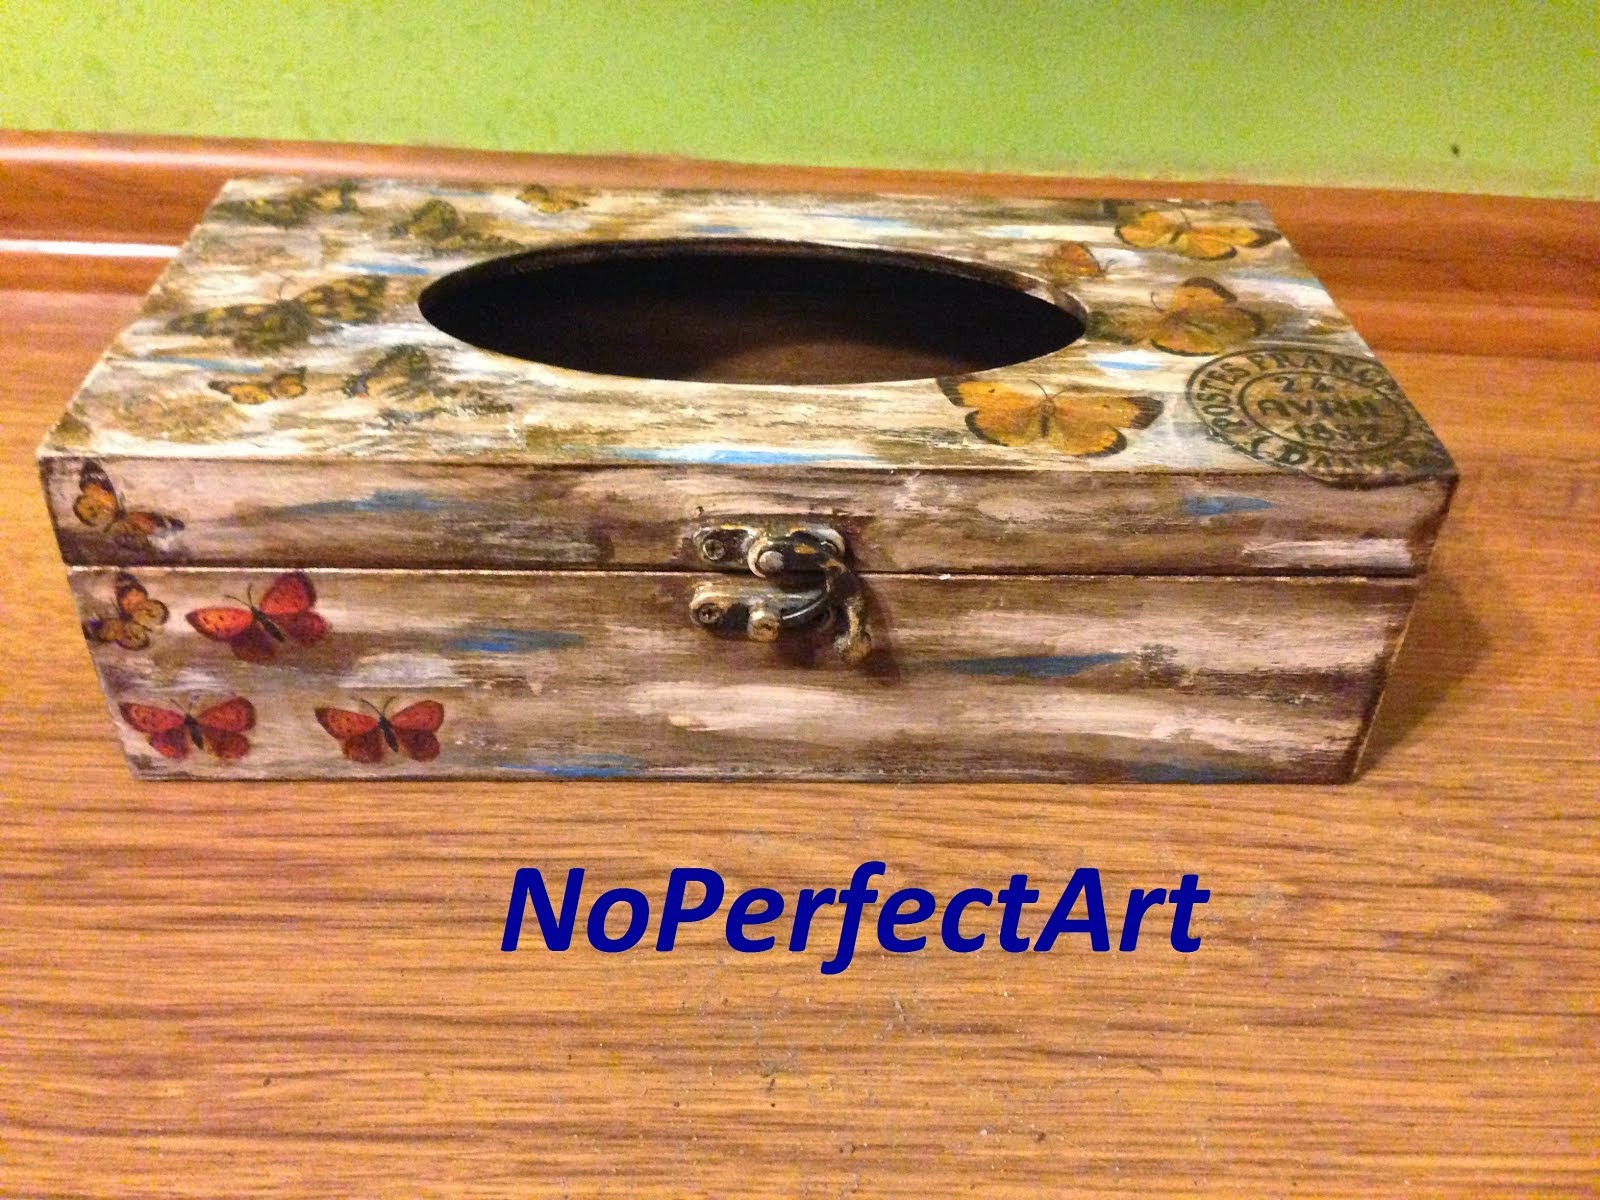 NoPerfectArt